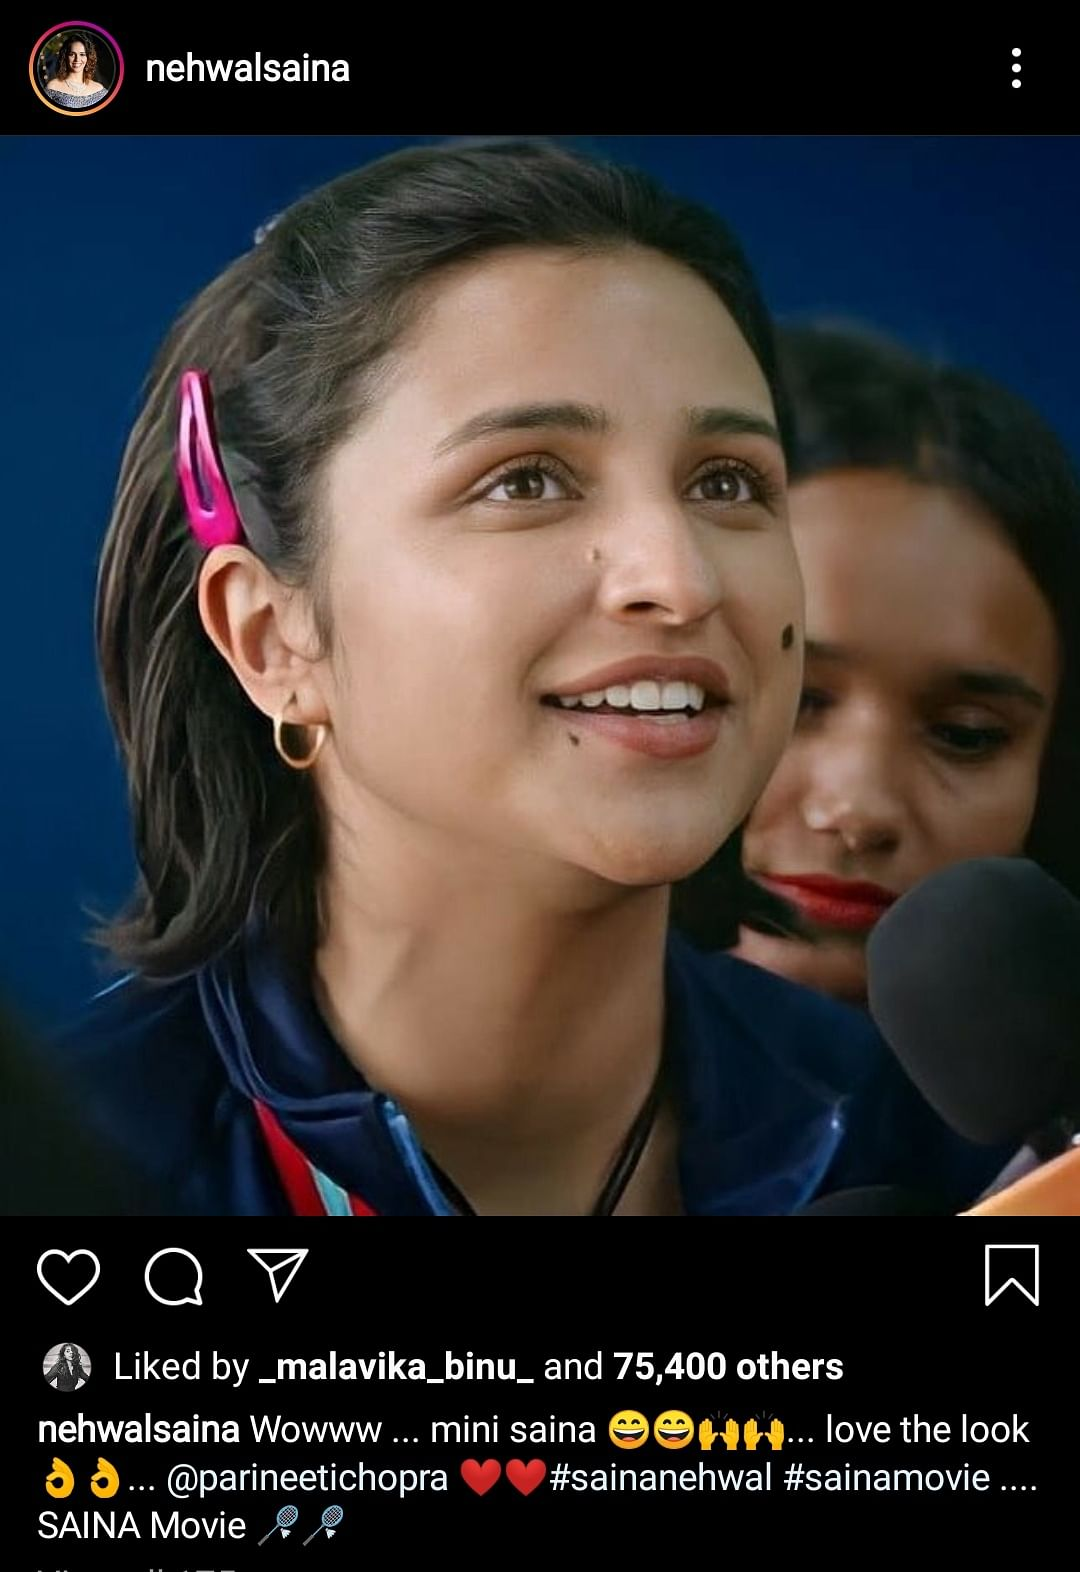 'Love the Look': Saina Nehwal Praises Parineeti in & as 'Saina'